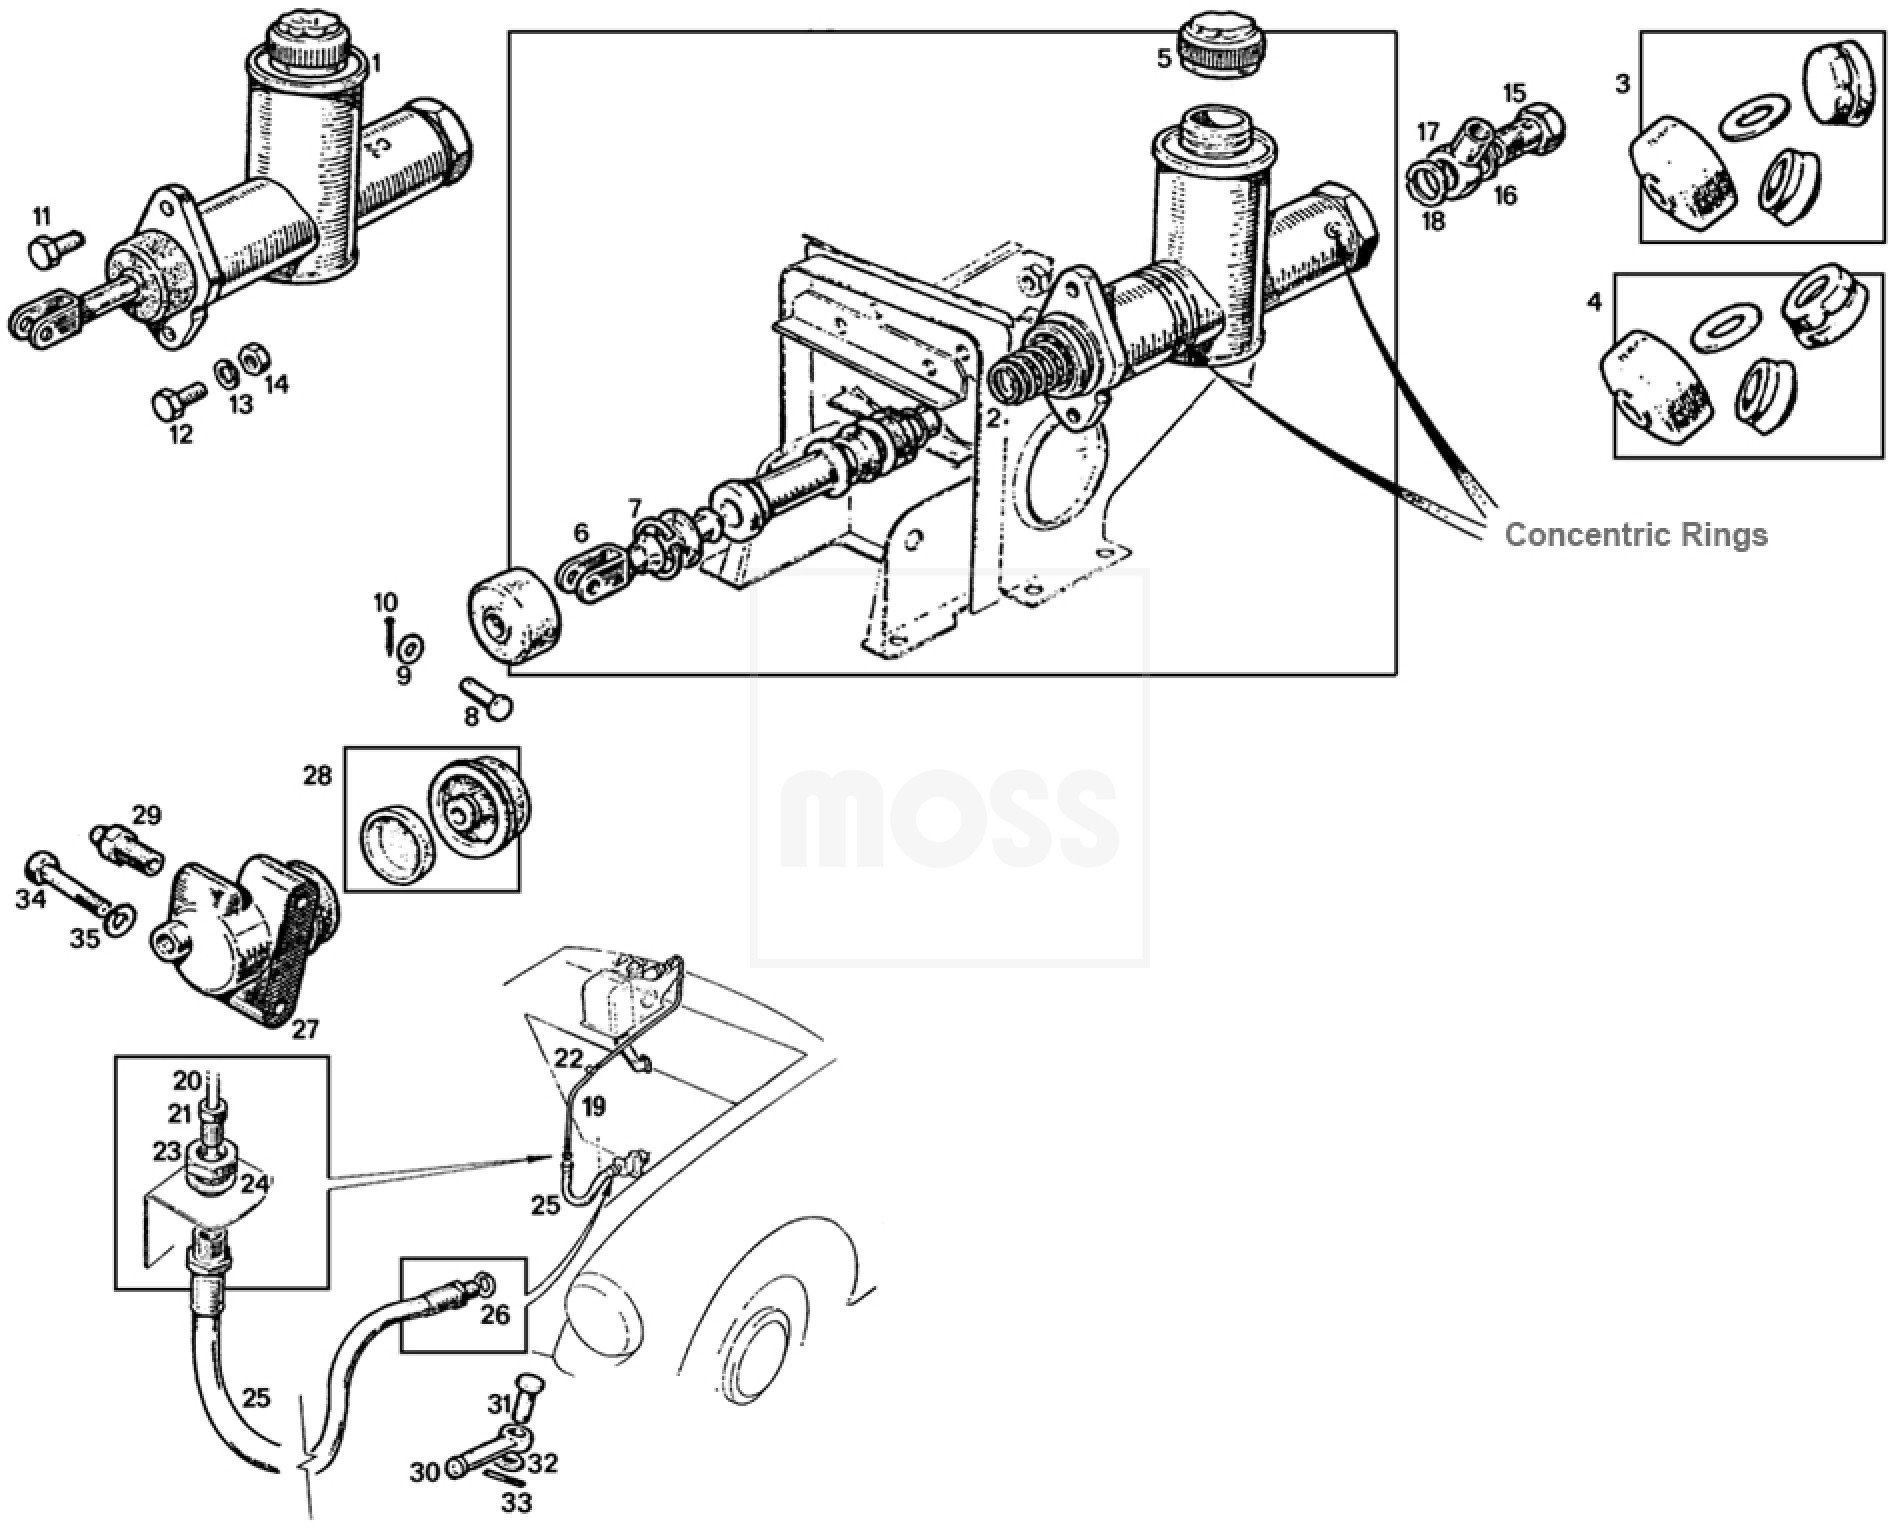 1969 Mg Midget Wiring Diagram 1969 MG Midget Transmission